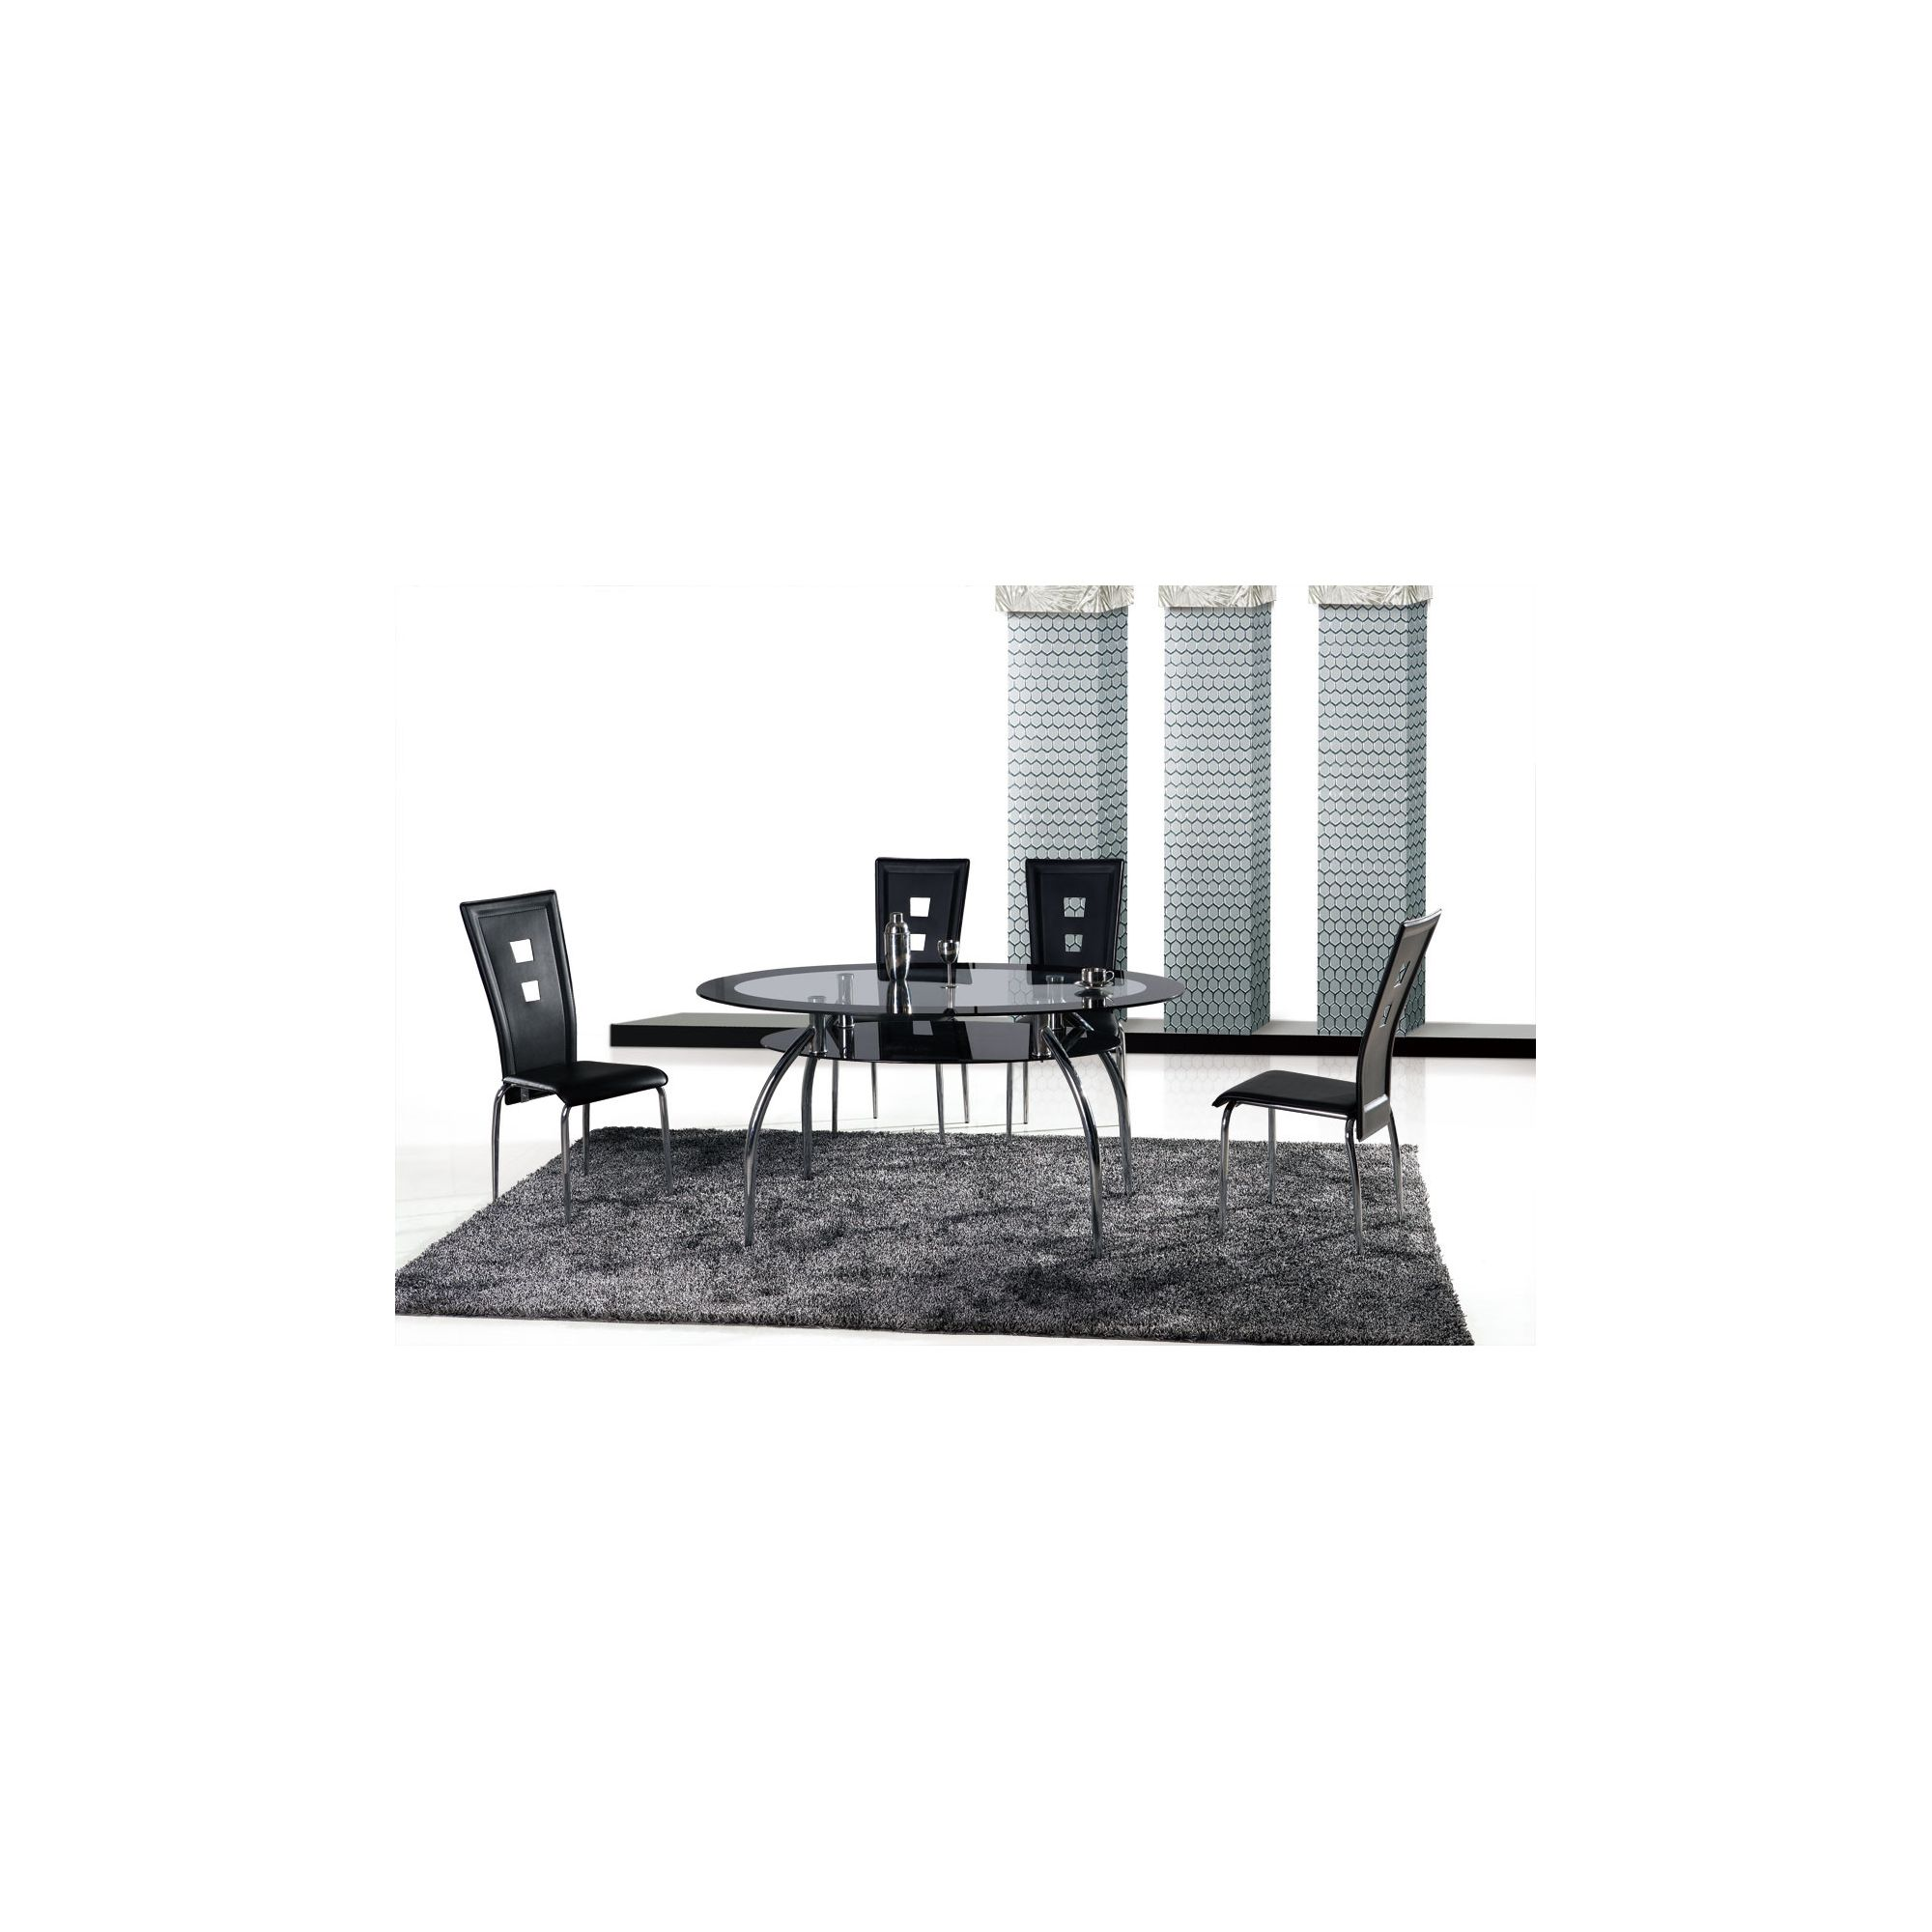 Ideal Furniture Vegas Dining Table Set with Four Chairs - Black at Tesco Direct